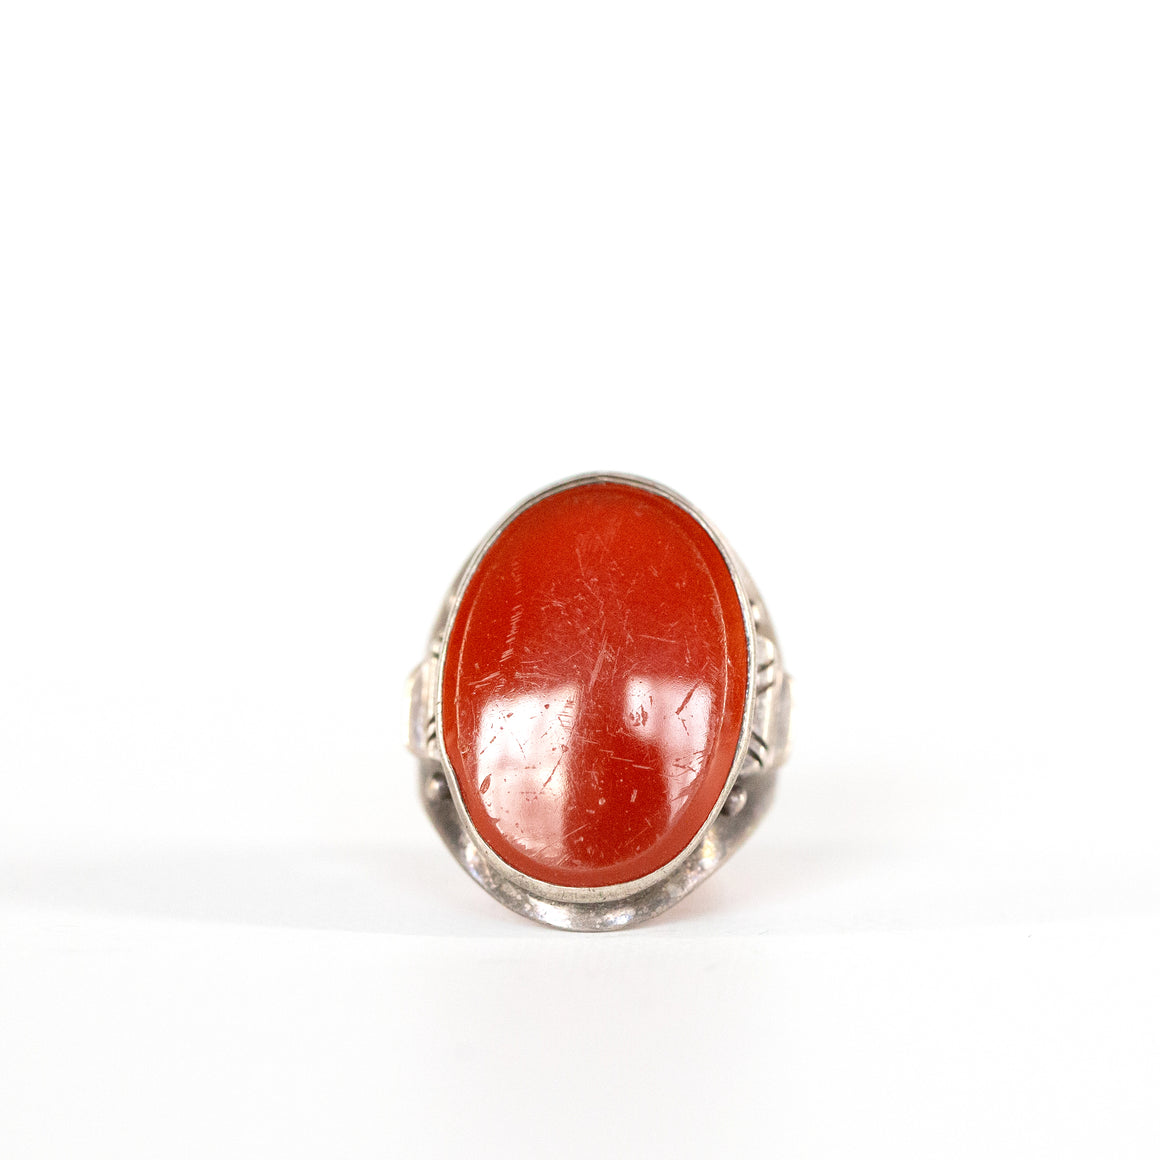 VINTAGE JEWELRY | STERLING RED STONE RING (SIZE 8)